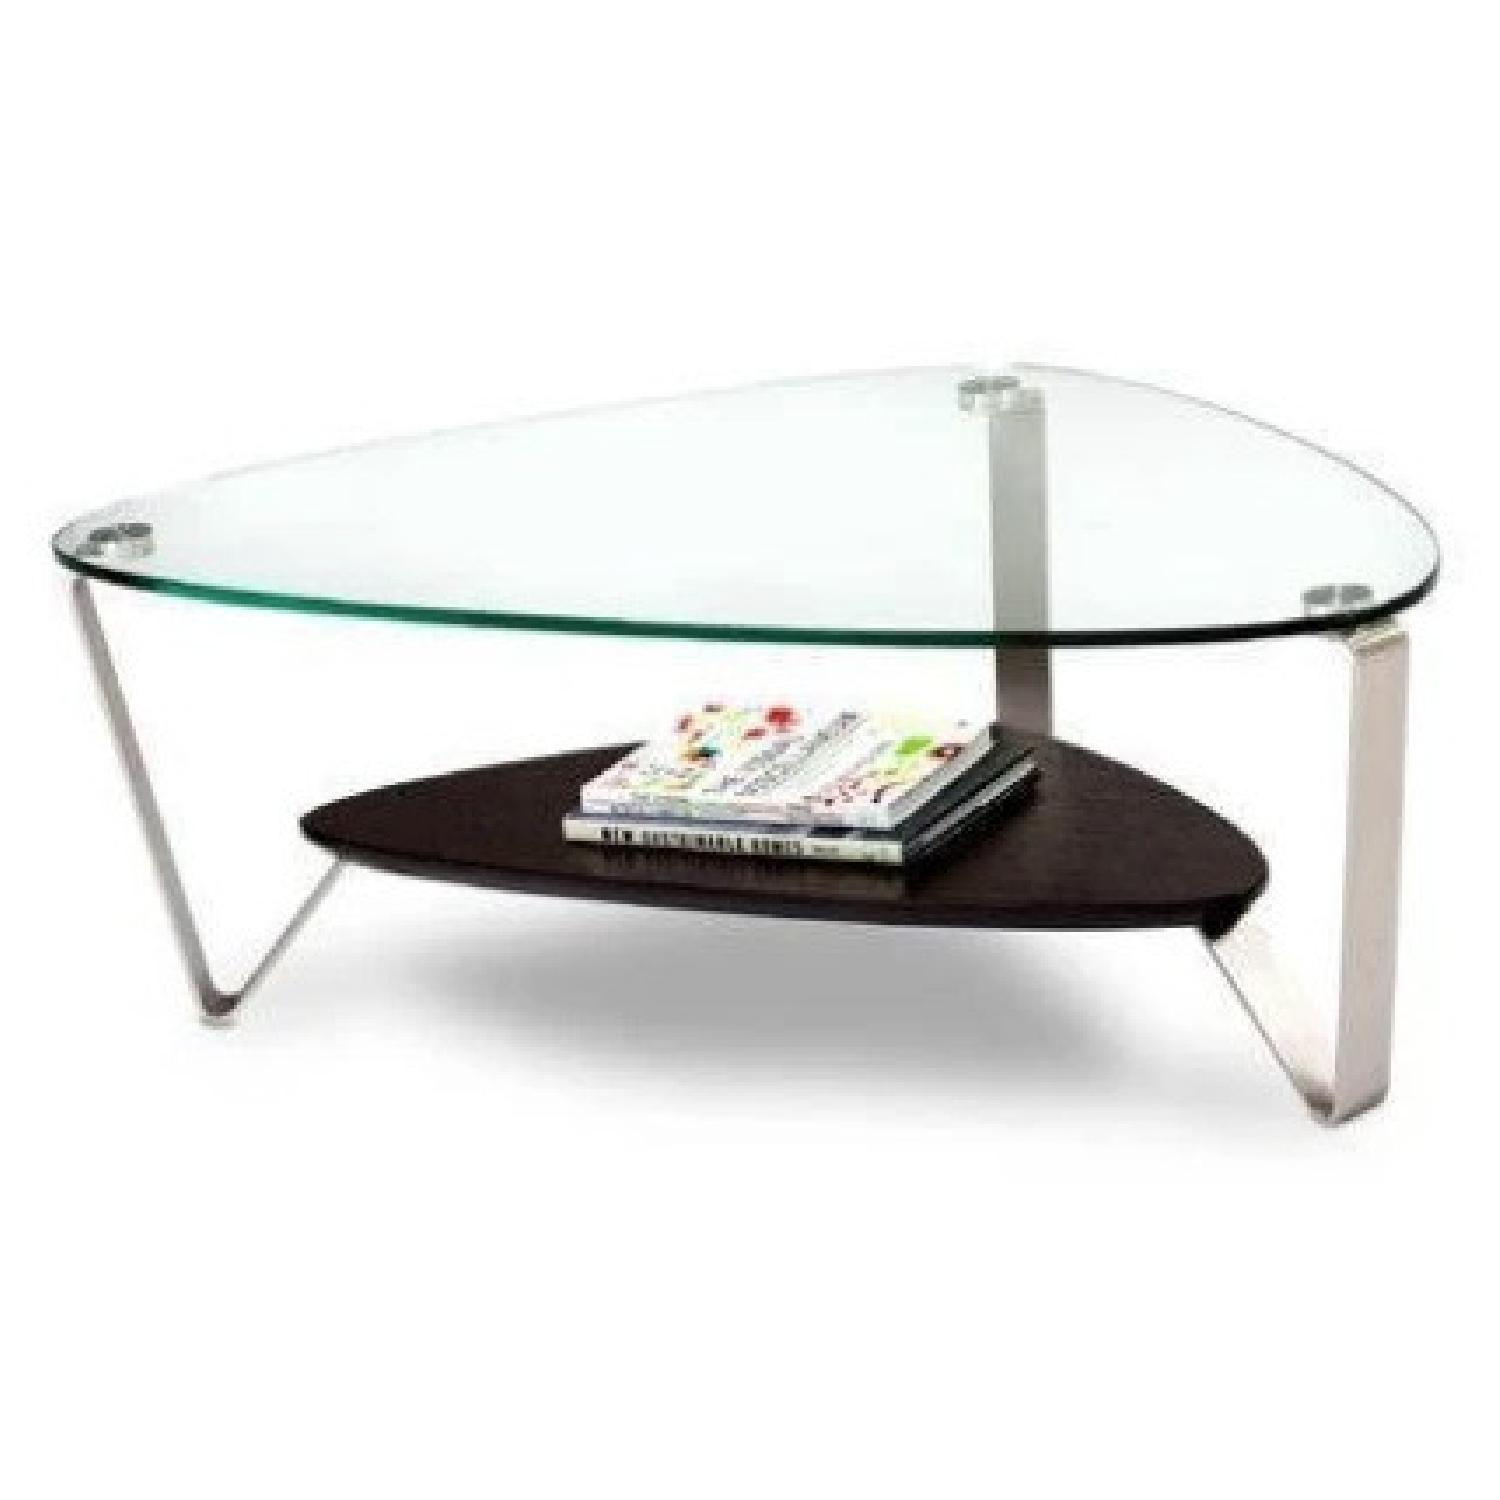 Modern Small Glass and Steel Coffee Table - image-4